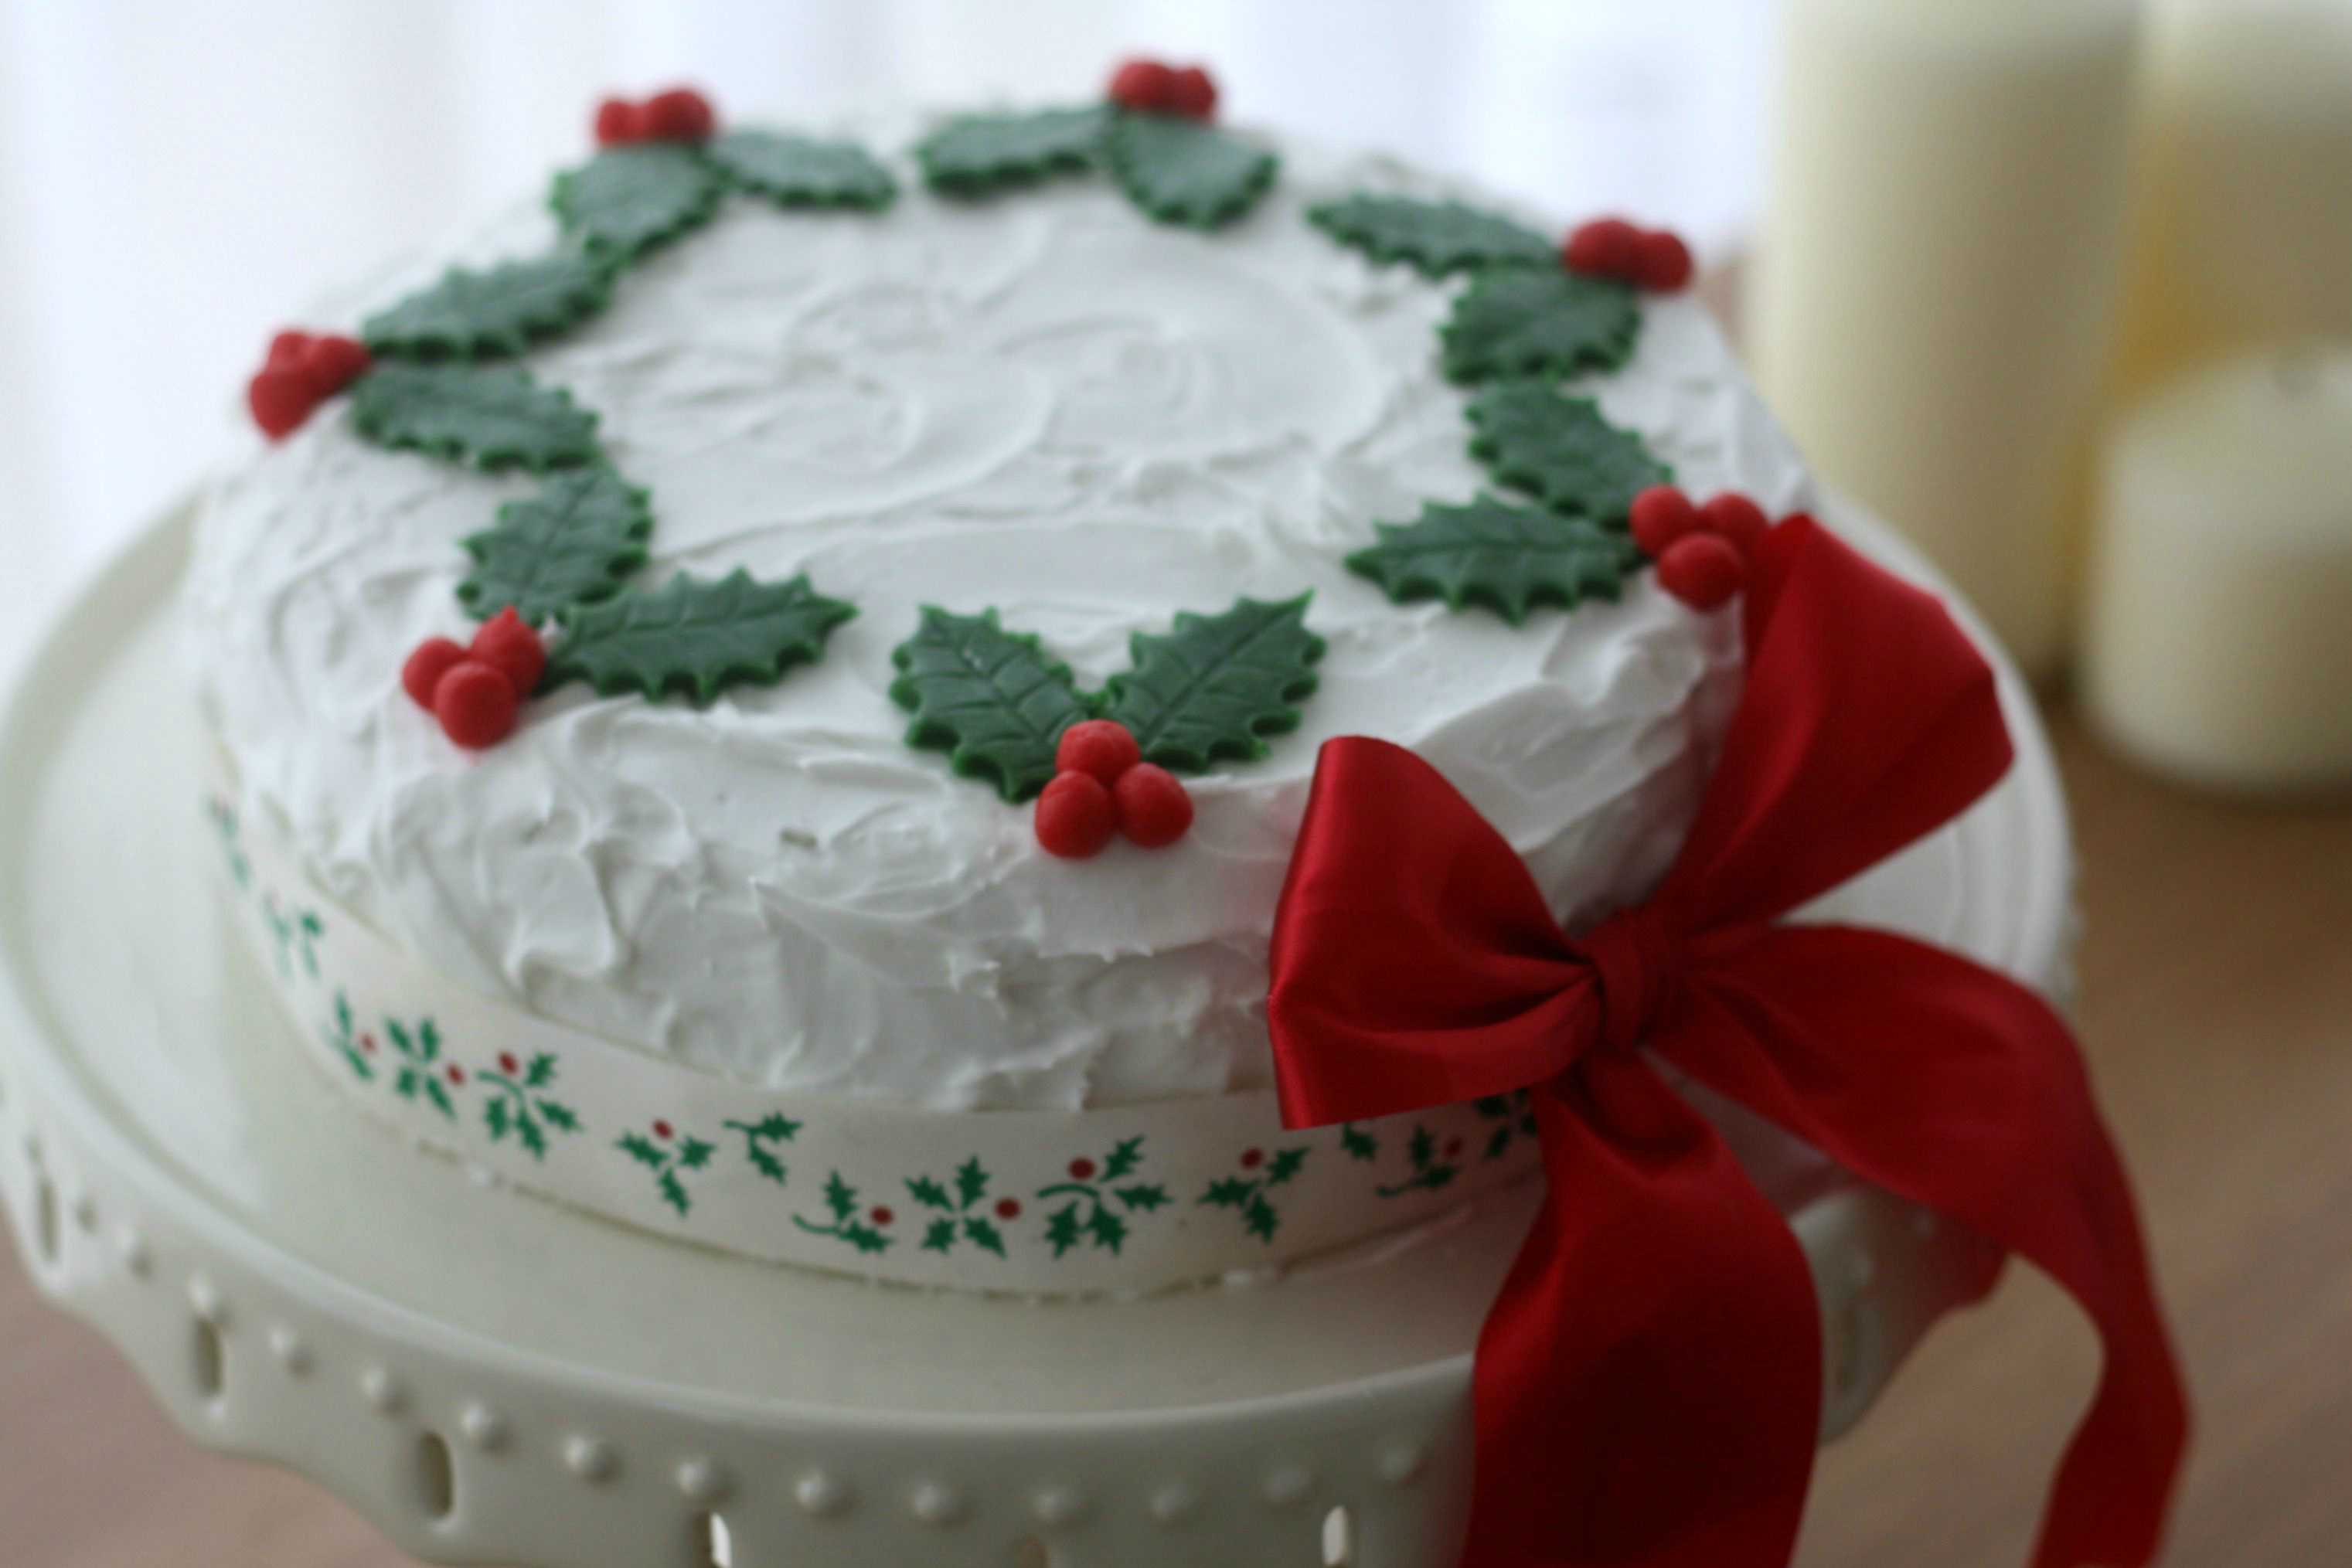 Christmas Wreath Cake from Makes, Bakes and Decor